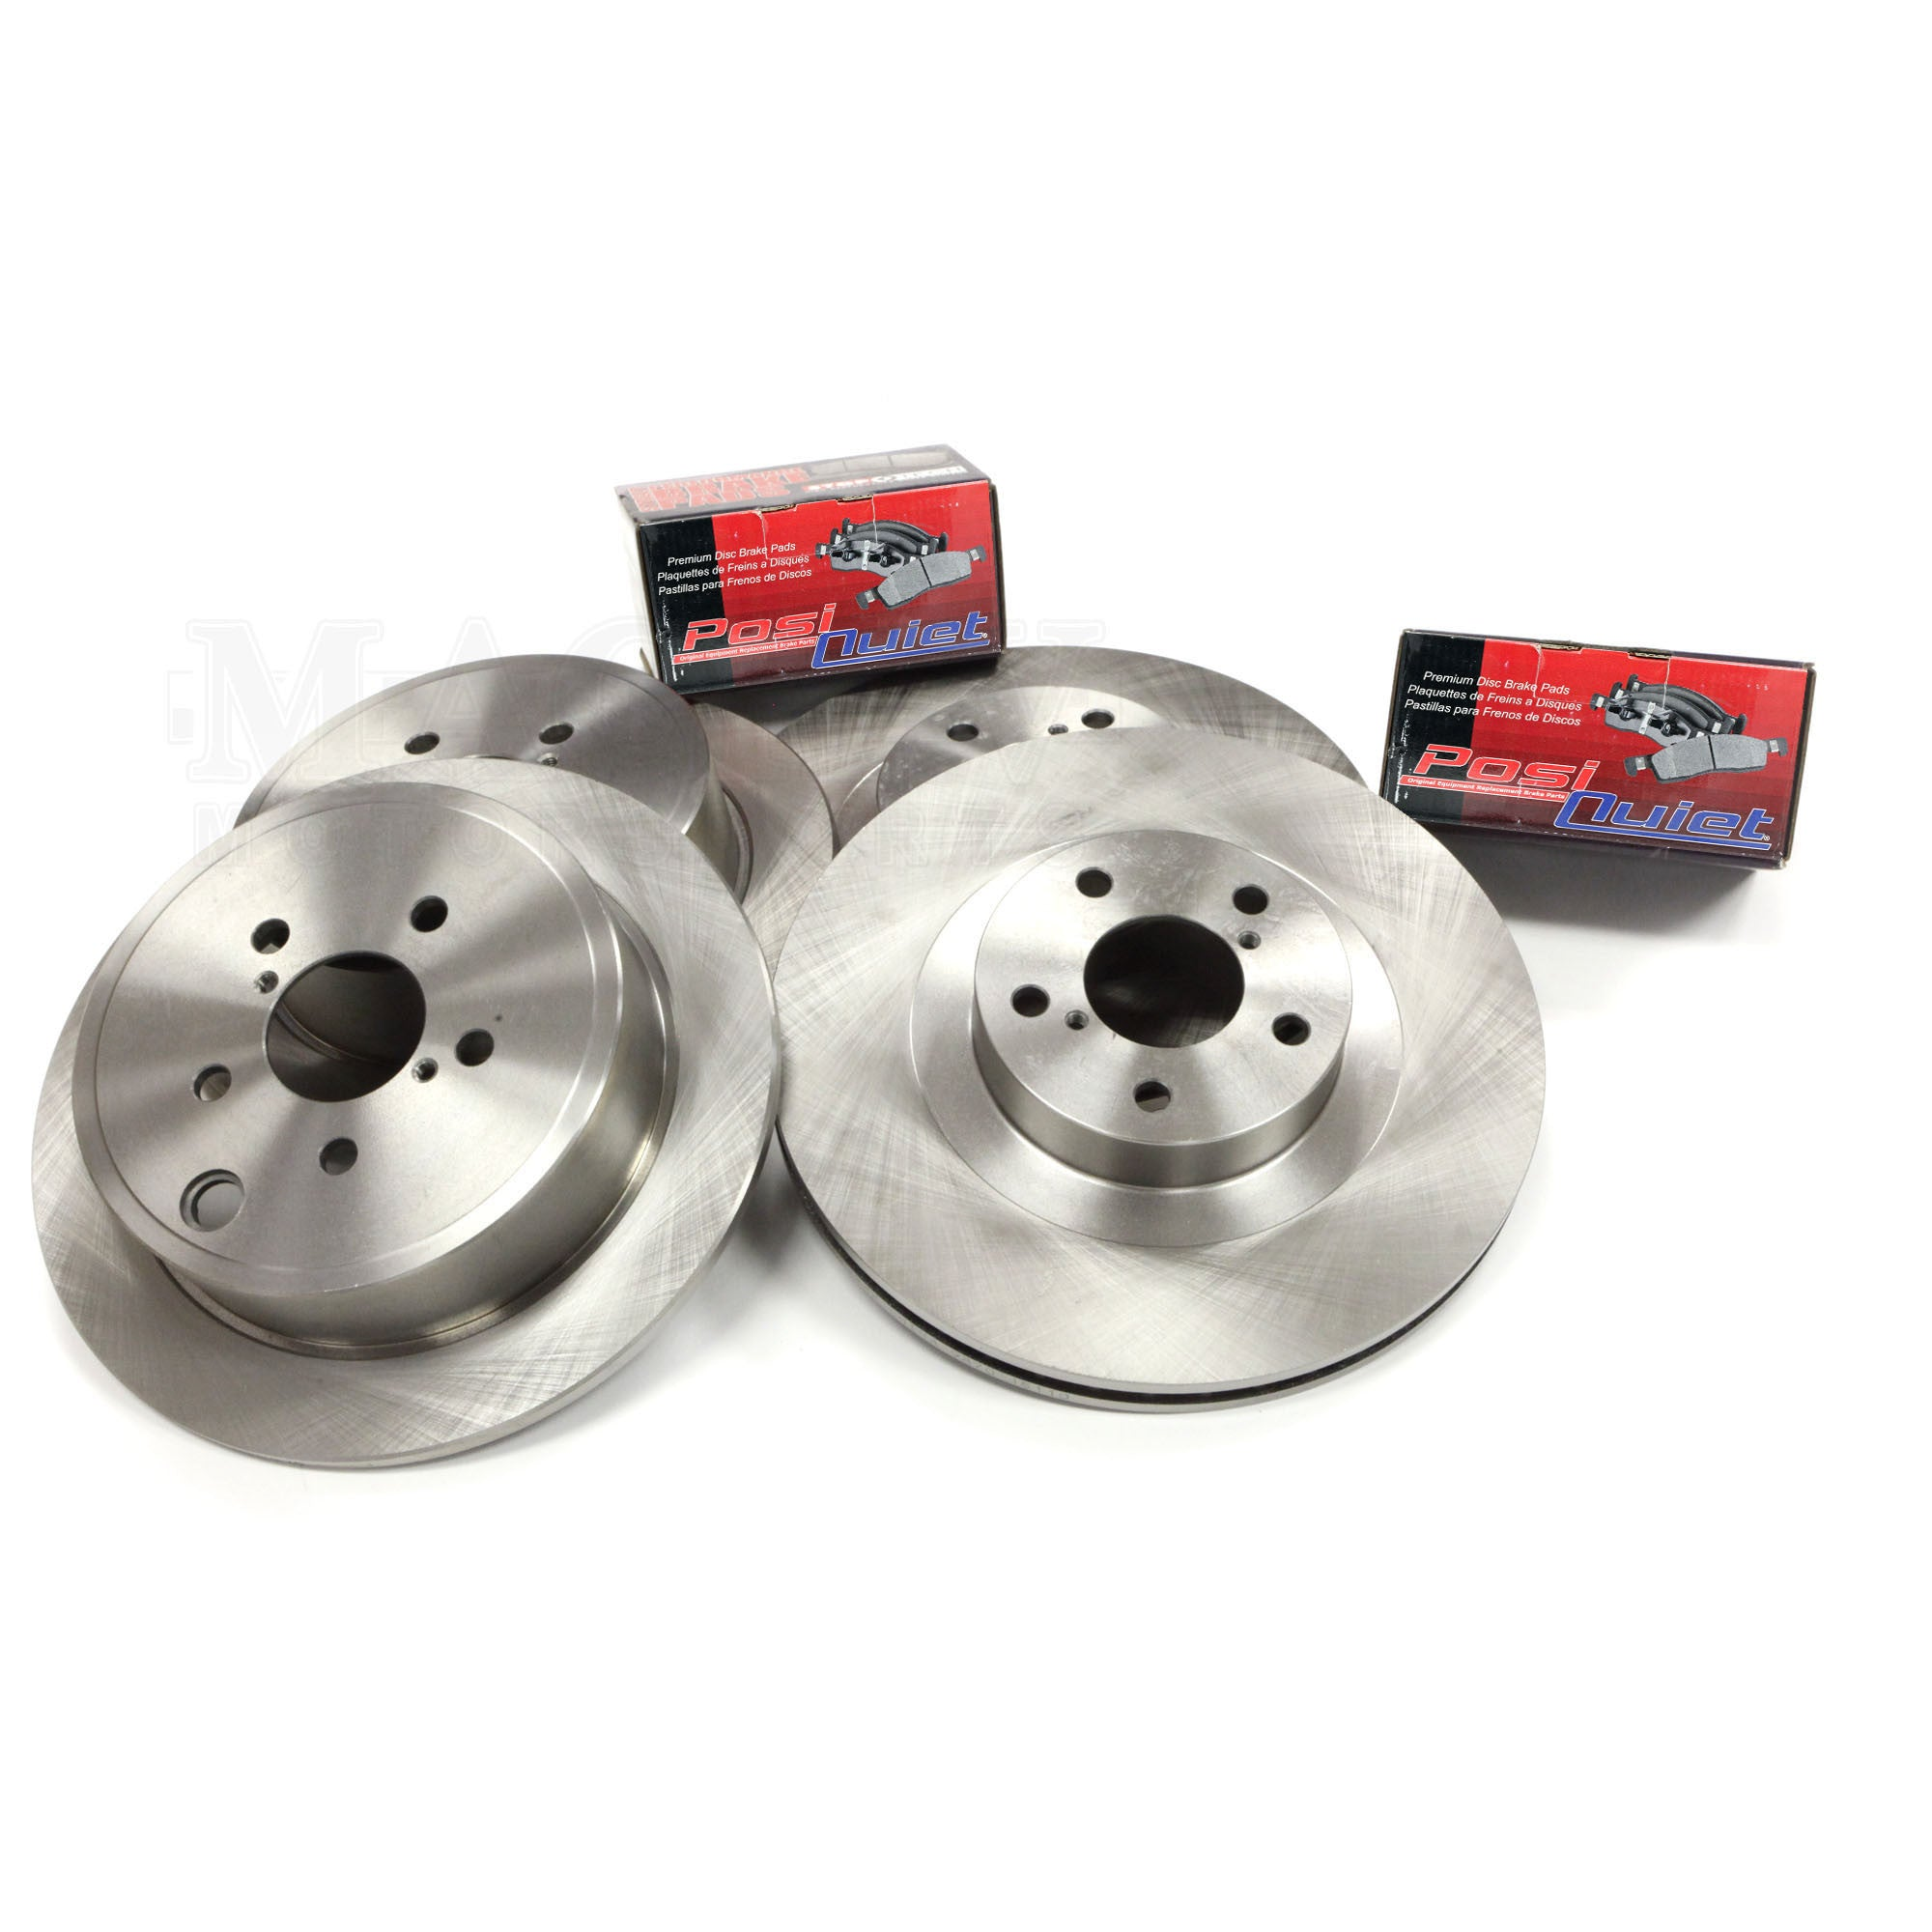 OE Series Rotors + Ceramic Pads KT017042 Max Brakes Rear Premium Brake Kit Fits: 2005 05 Subaru Impreza Wagon w//Rear Disc Brakes